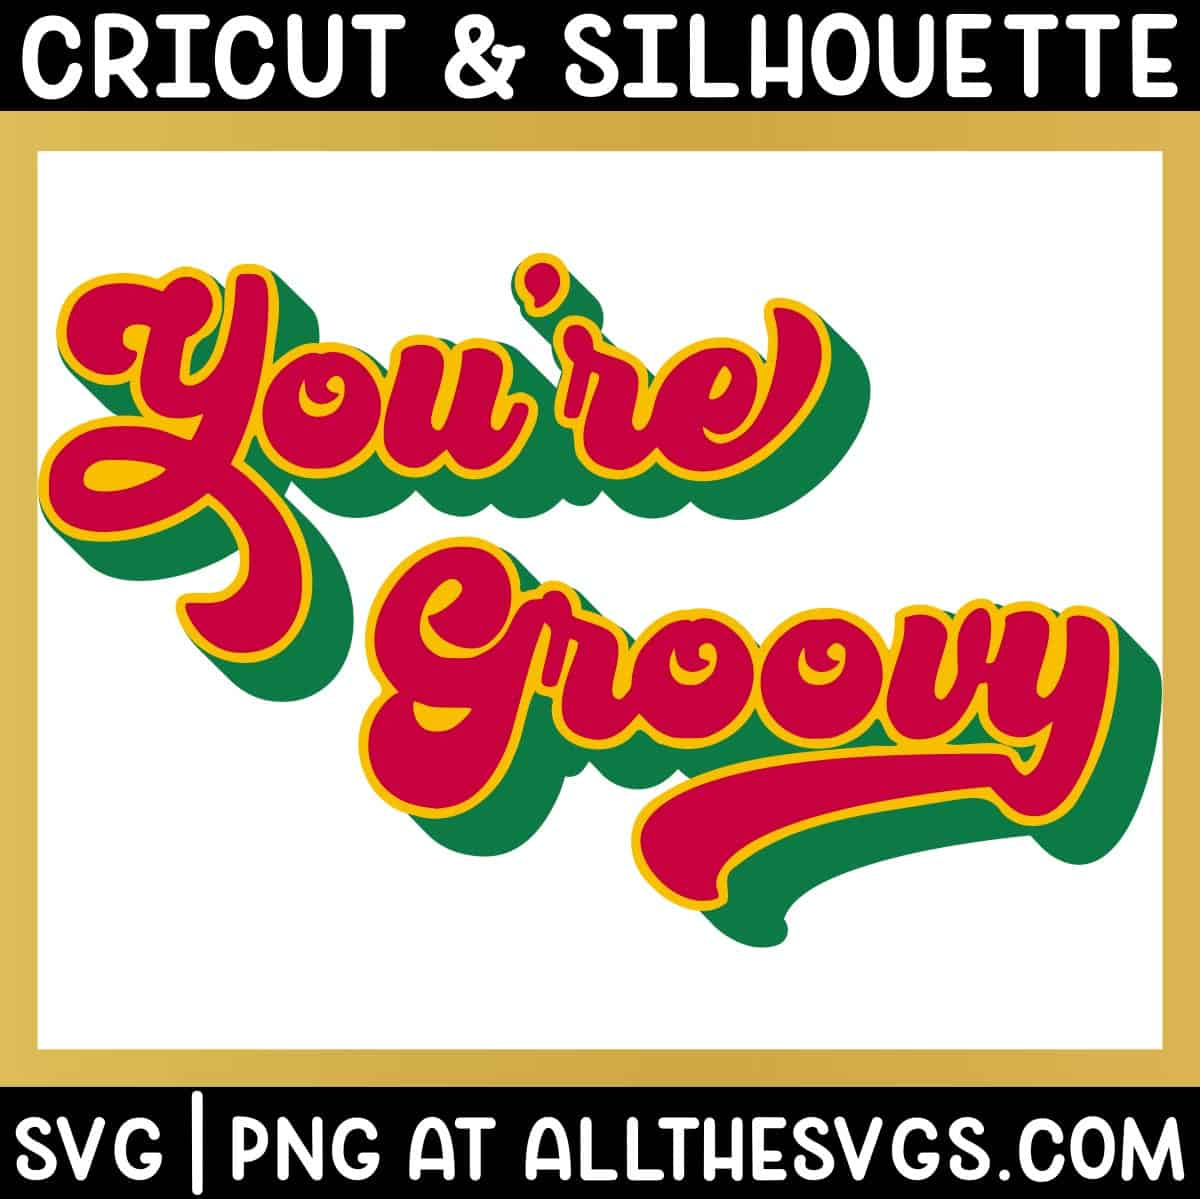 free you're groovy in script retro valentine svg png with shadow extrude